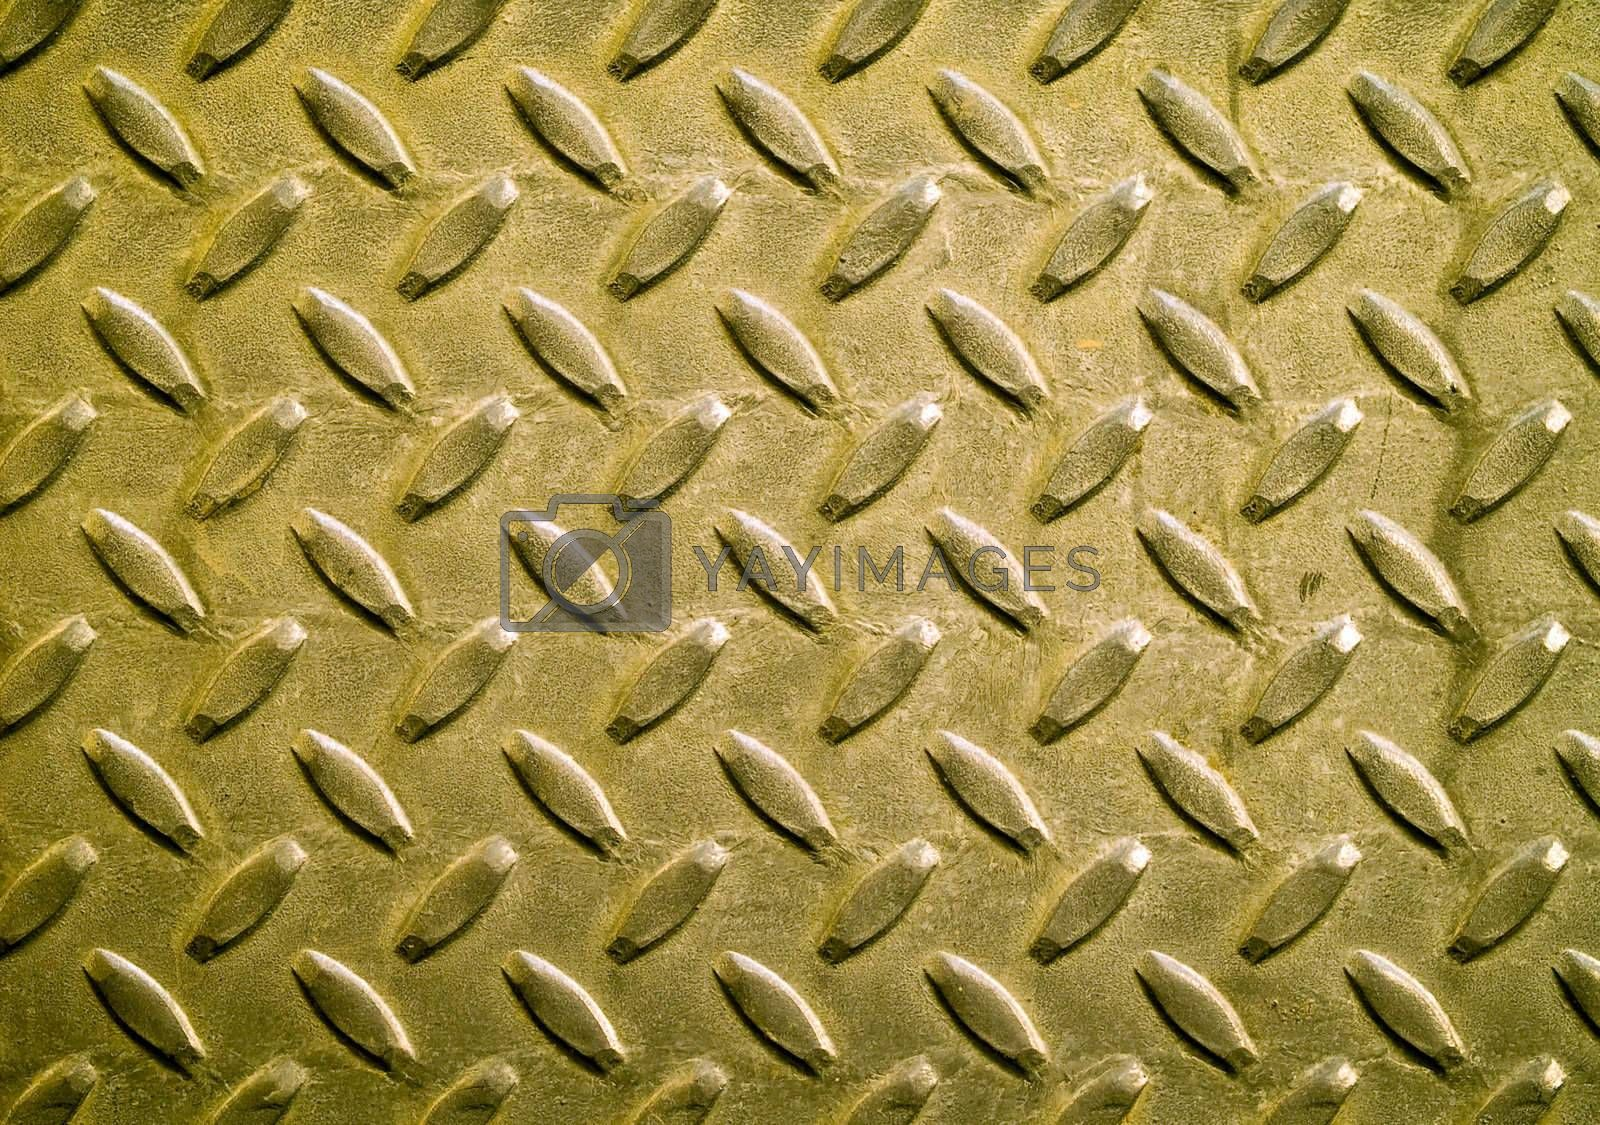 Diamond gold toned metal background texture illuminated by sunlight